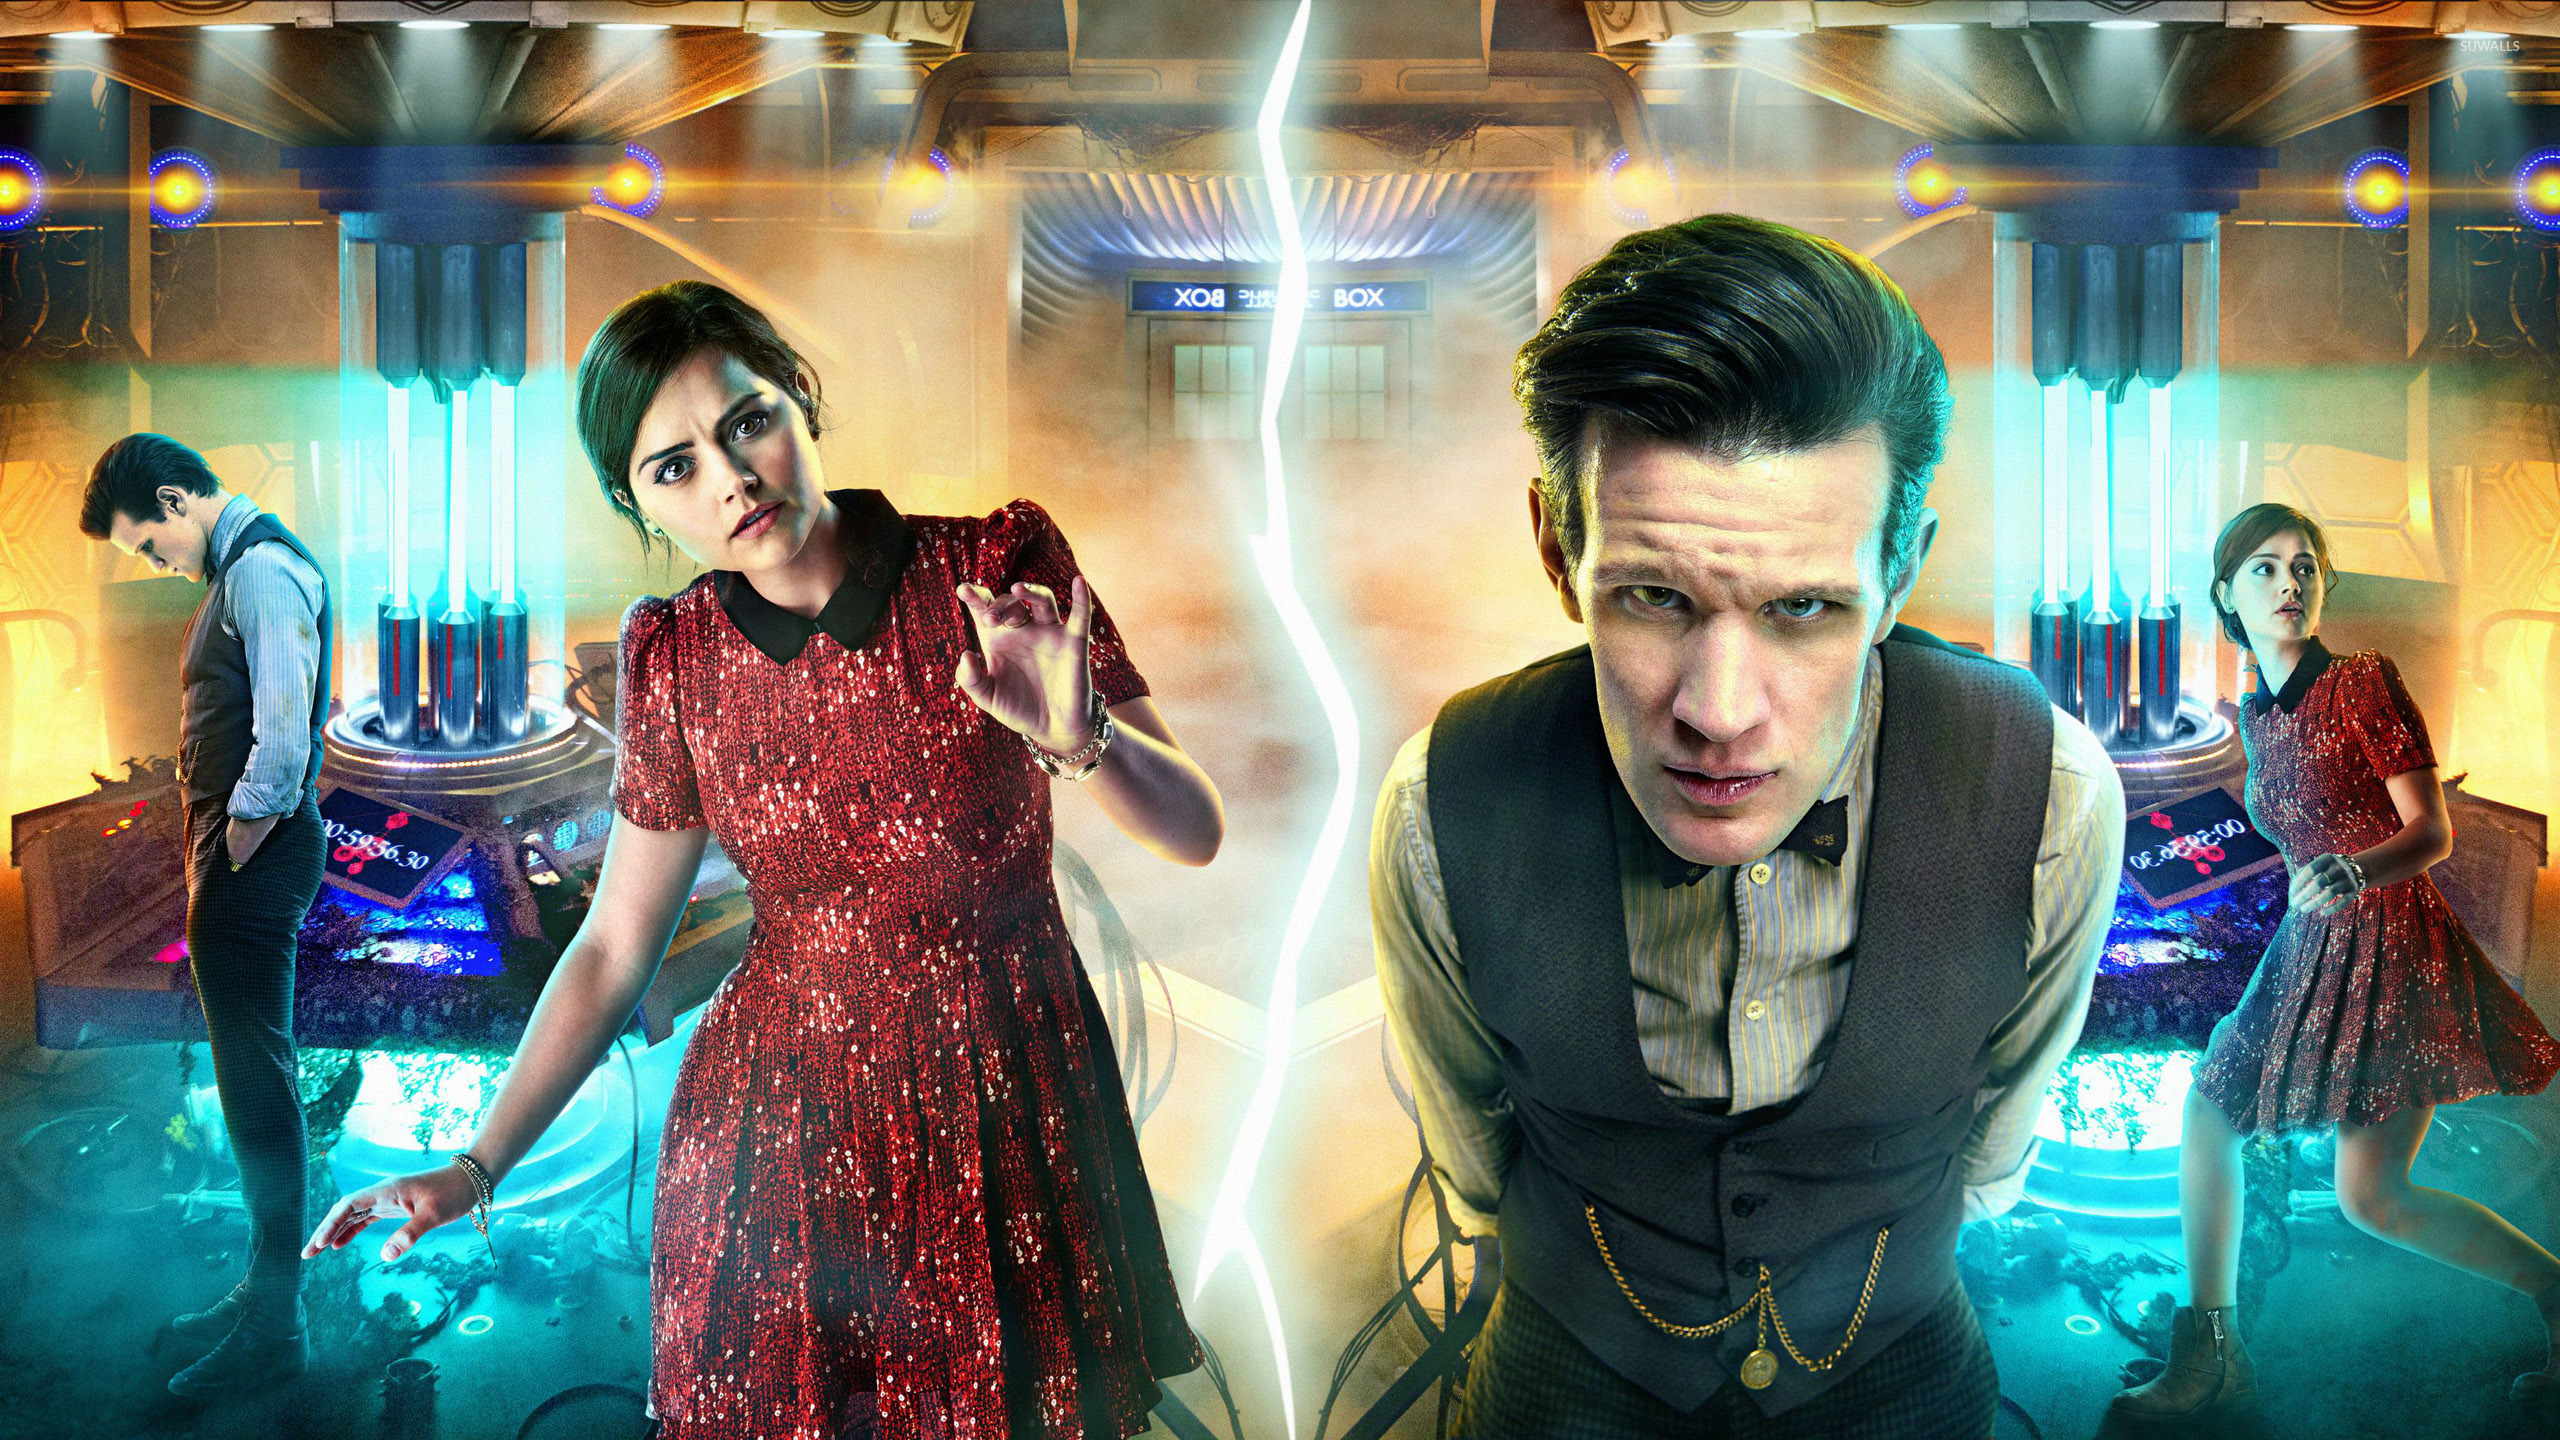 Doctor Who 6 Wallpaper Tv Show Wallpapers 27477